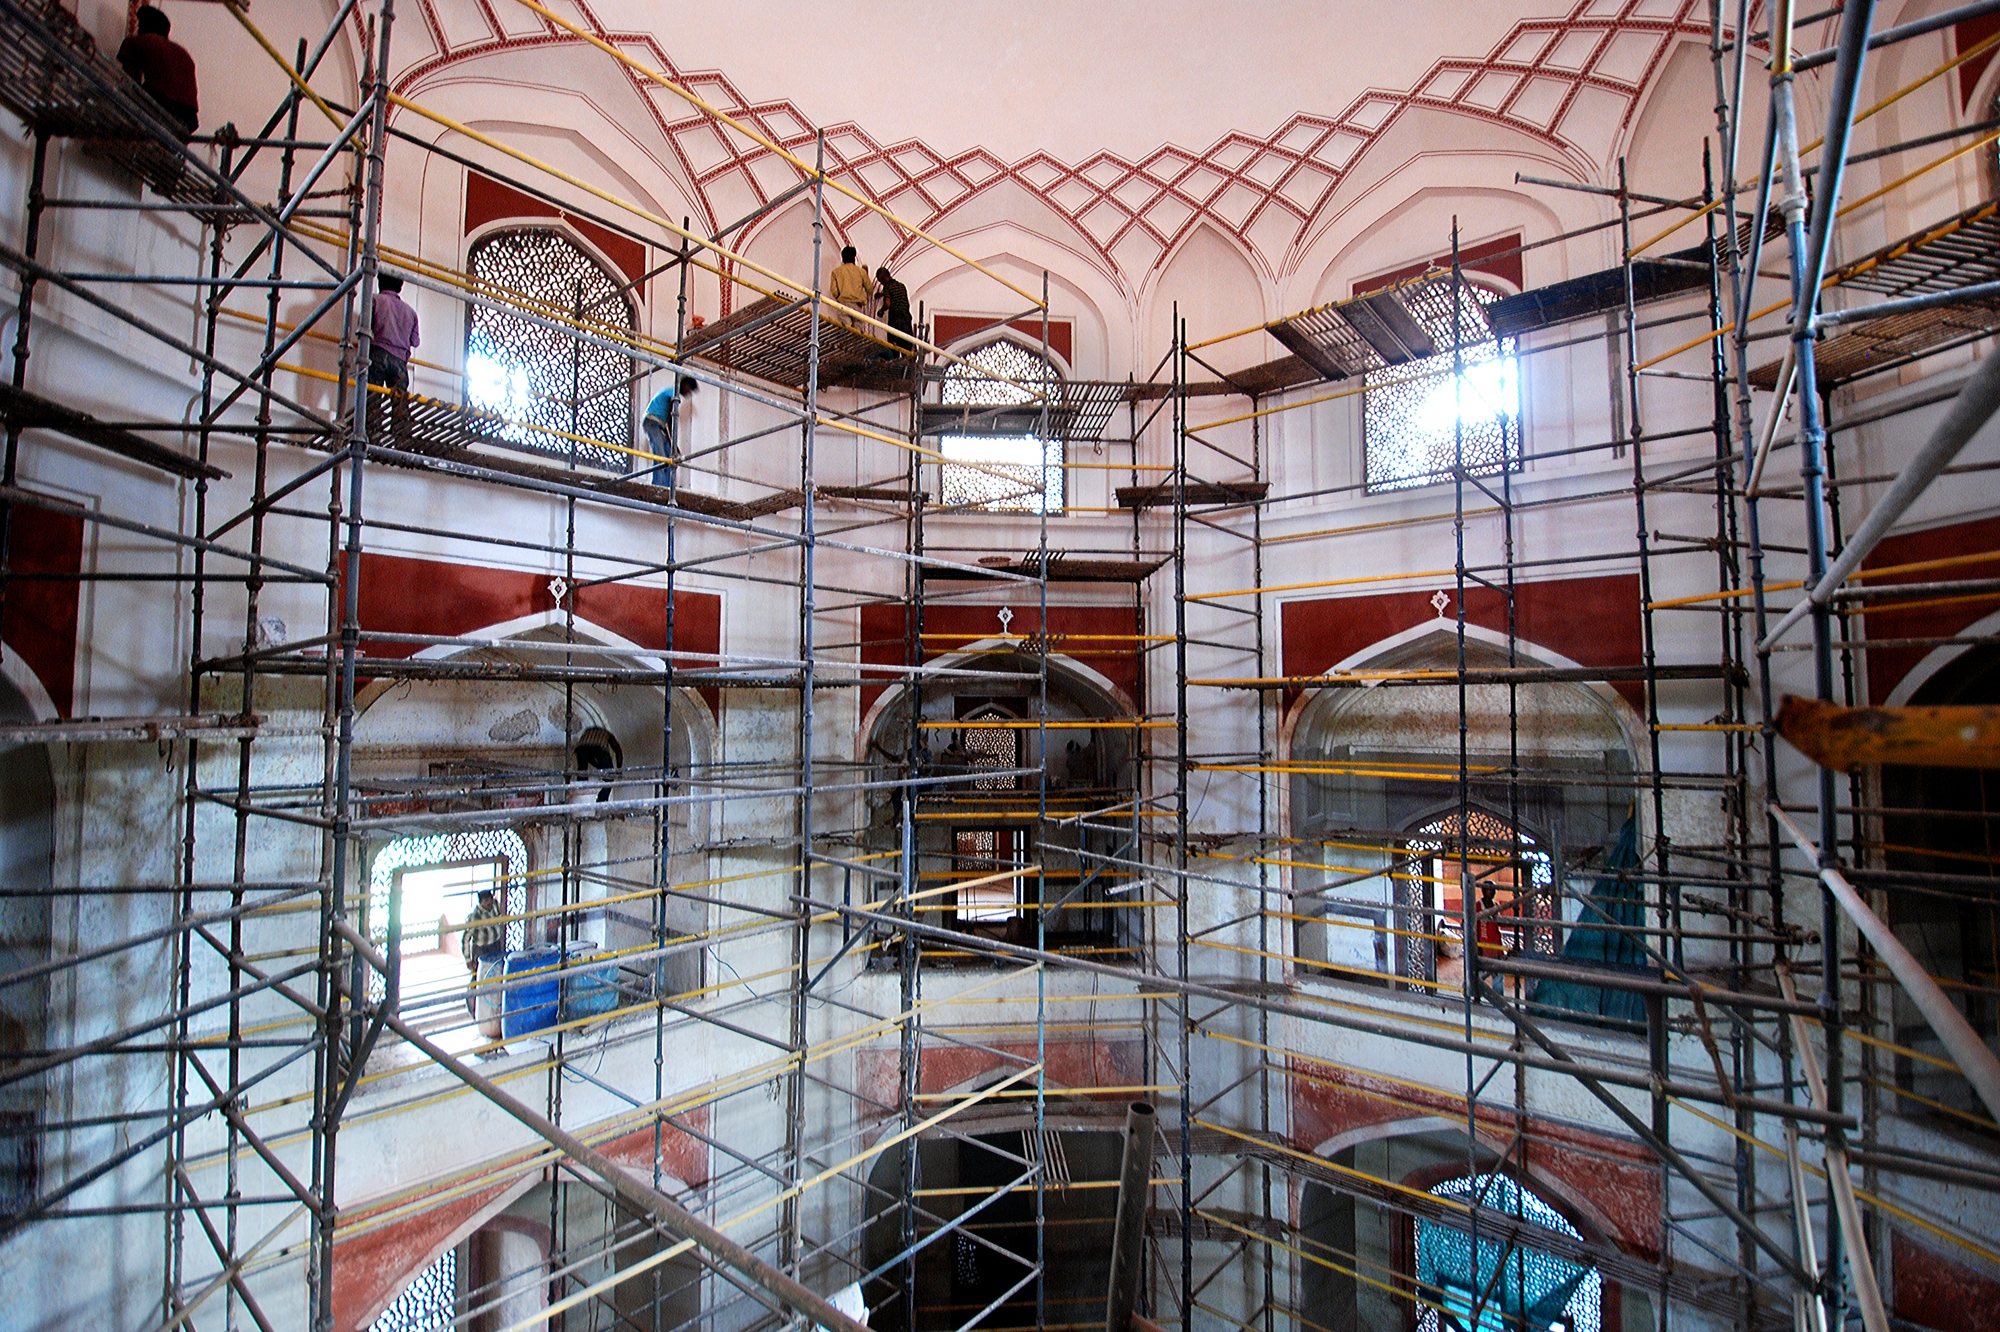 Scaffolding was erected in the main hall to redecorate and repair the water damage caused by leakage in the dome and rooftop.